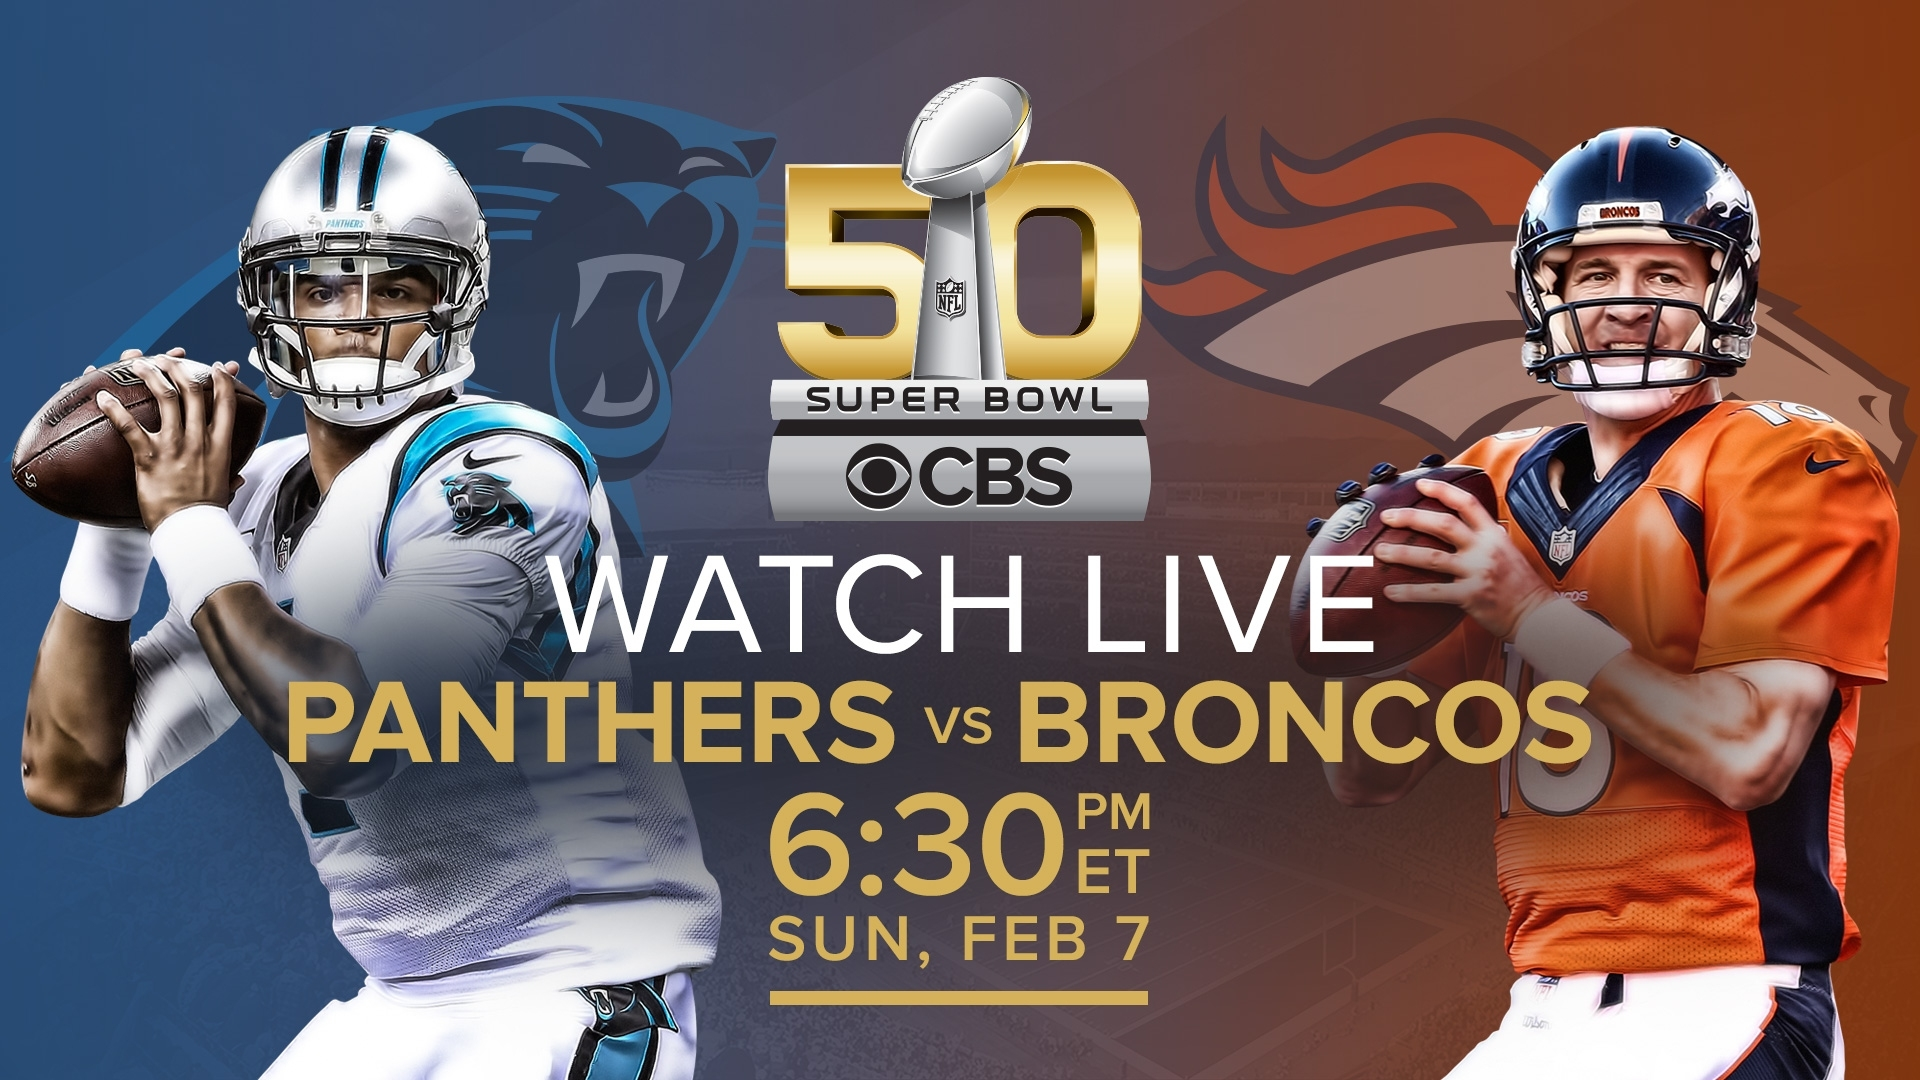 How To Watch Super Bowl 50 For Free On Your Iphone, Ipad And Mac regarding Last Year Super Bowl